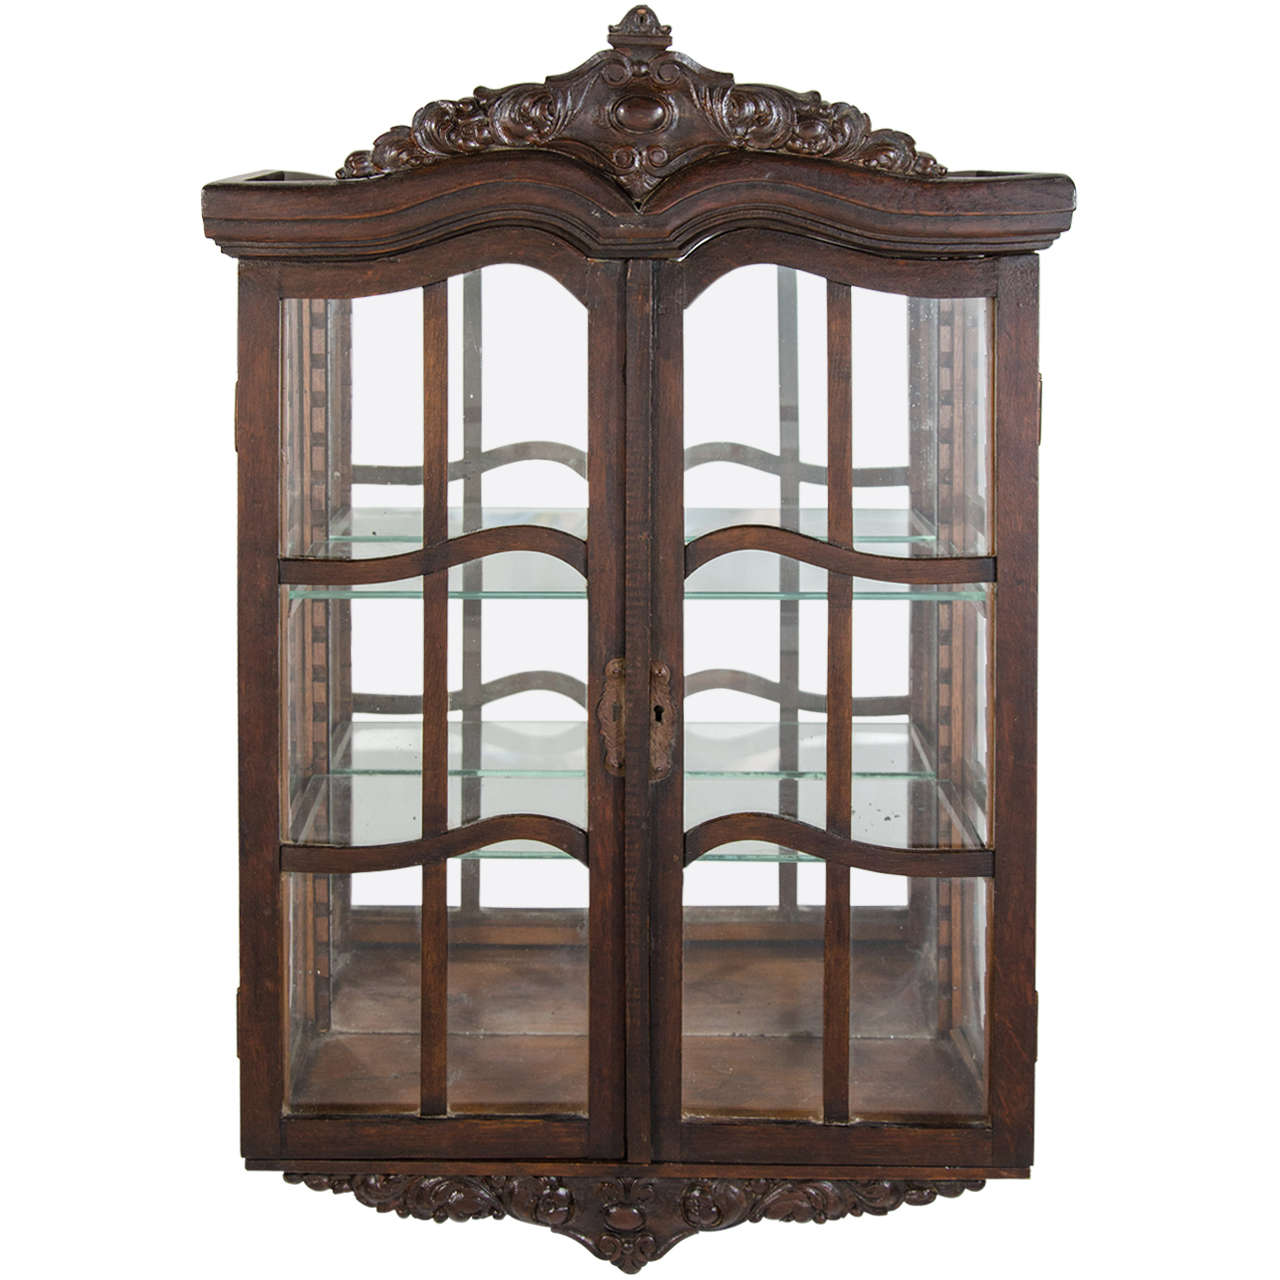 Victorian Antique Curio Cabinet with Hand Carved Wood Designs For Sale - Victorian Antique Curio Cabinet With Hand Carved Wood Designs At 1stdibs